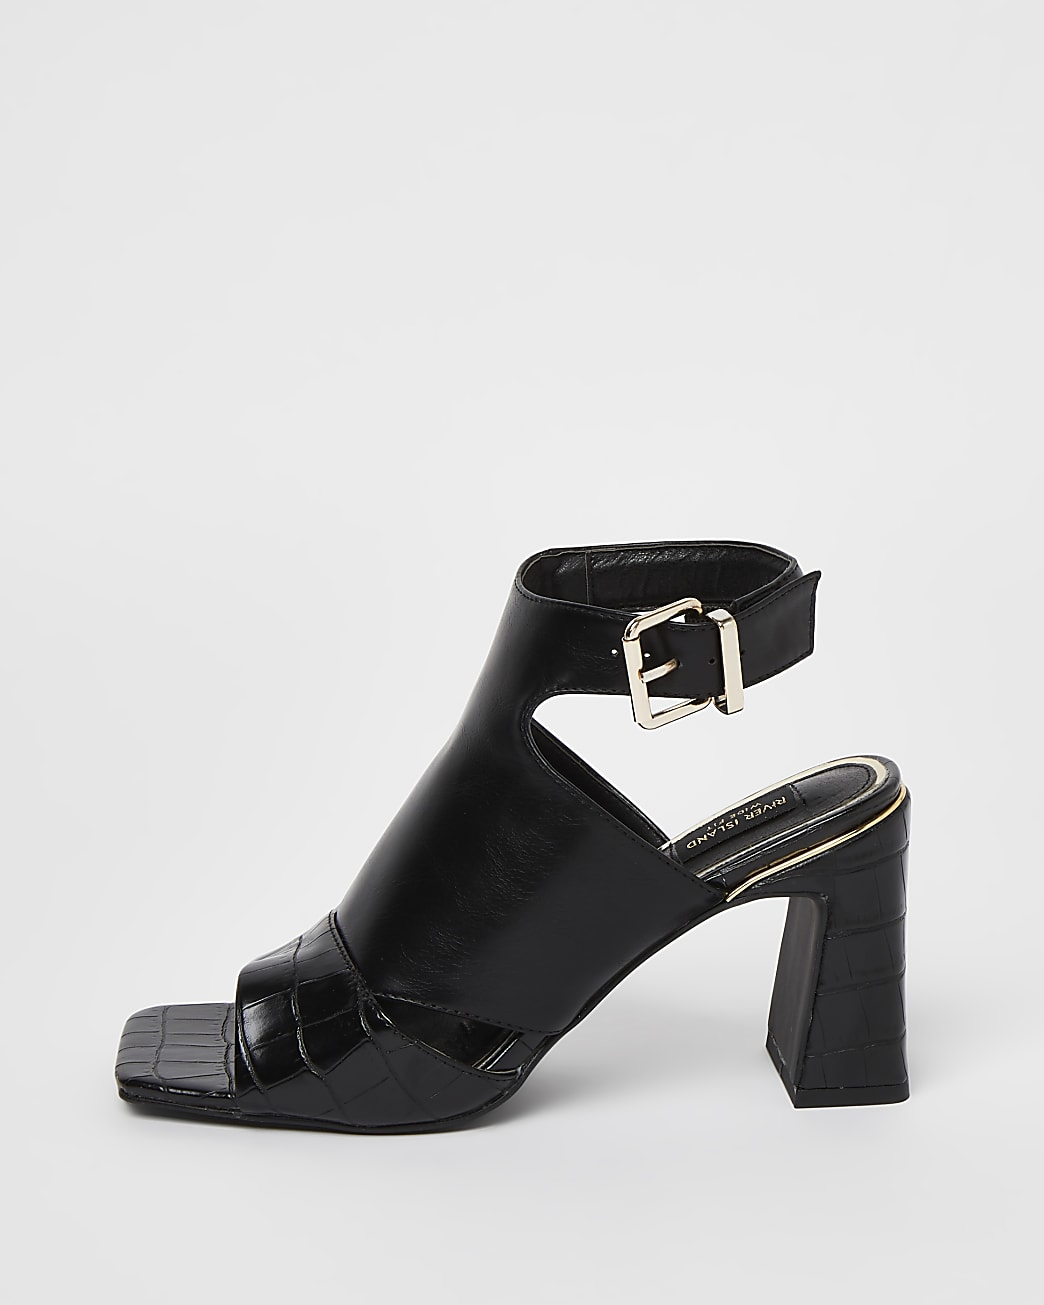 Black wide fit cut out toe heeled shoe boots